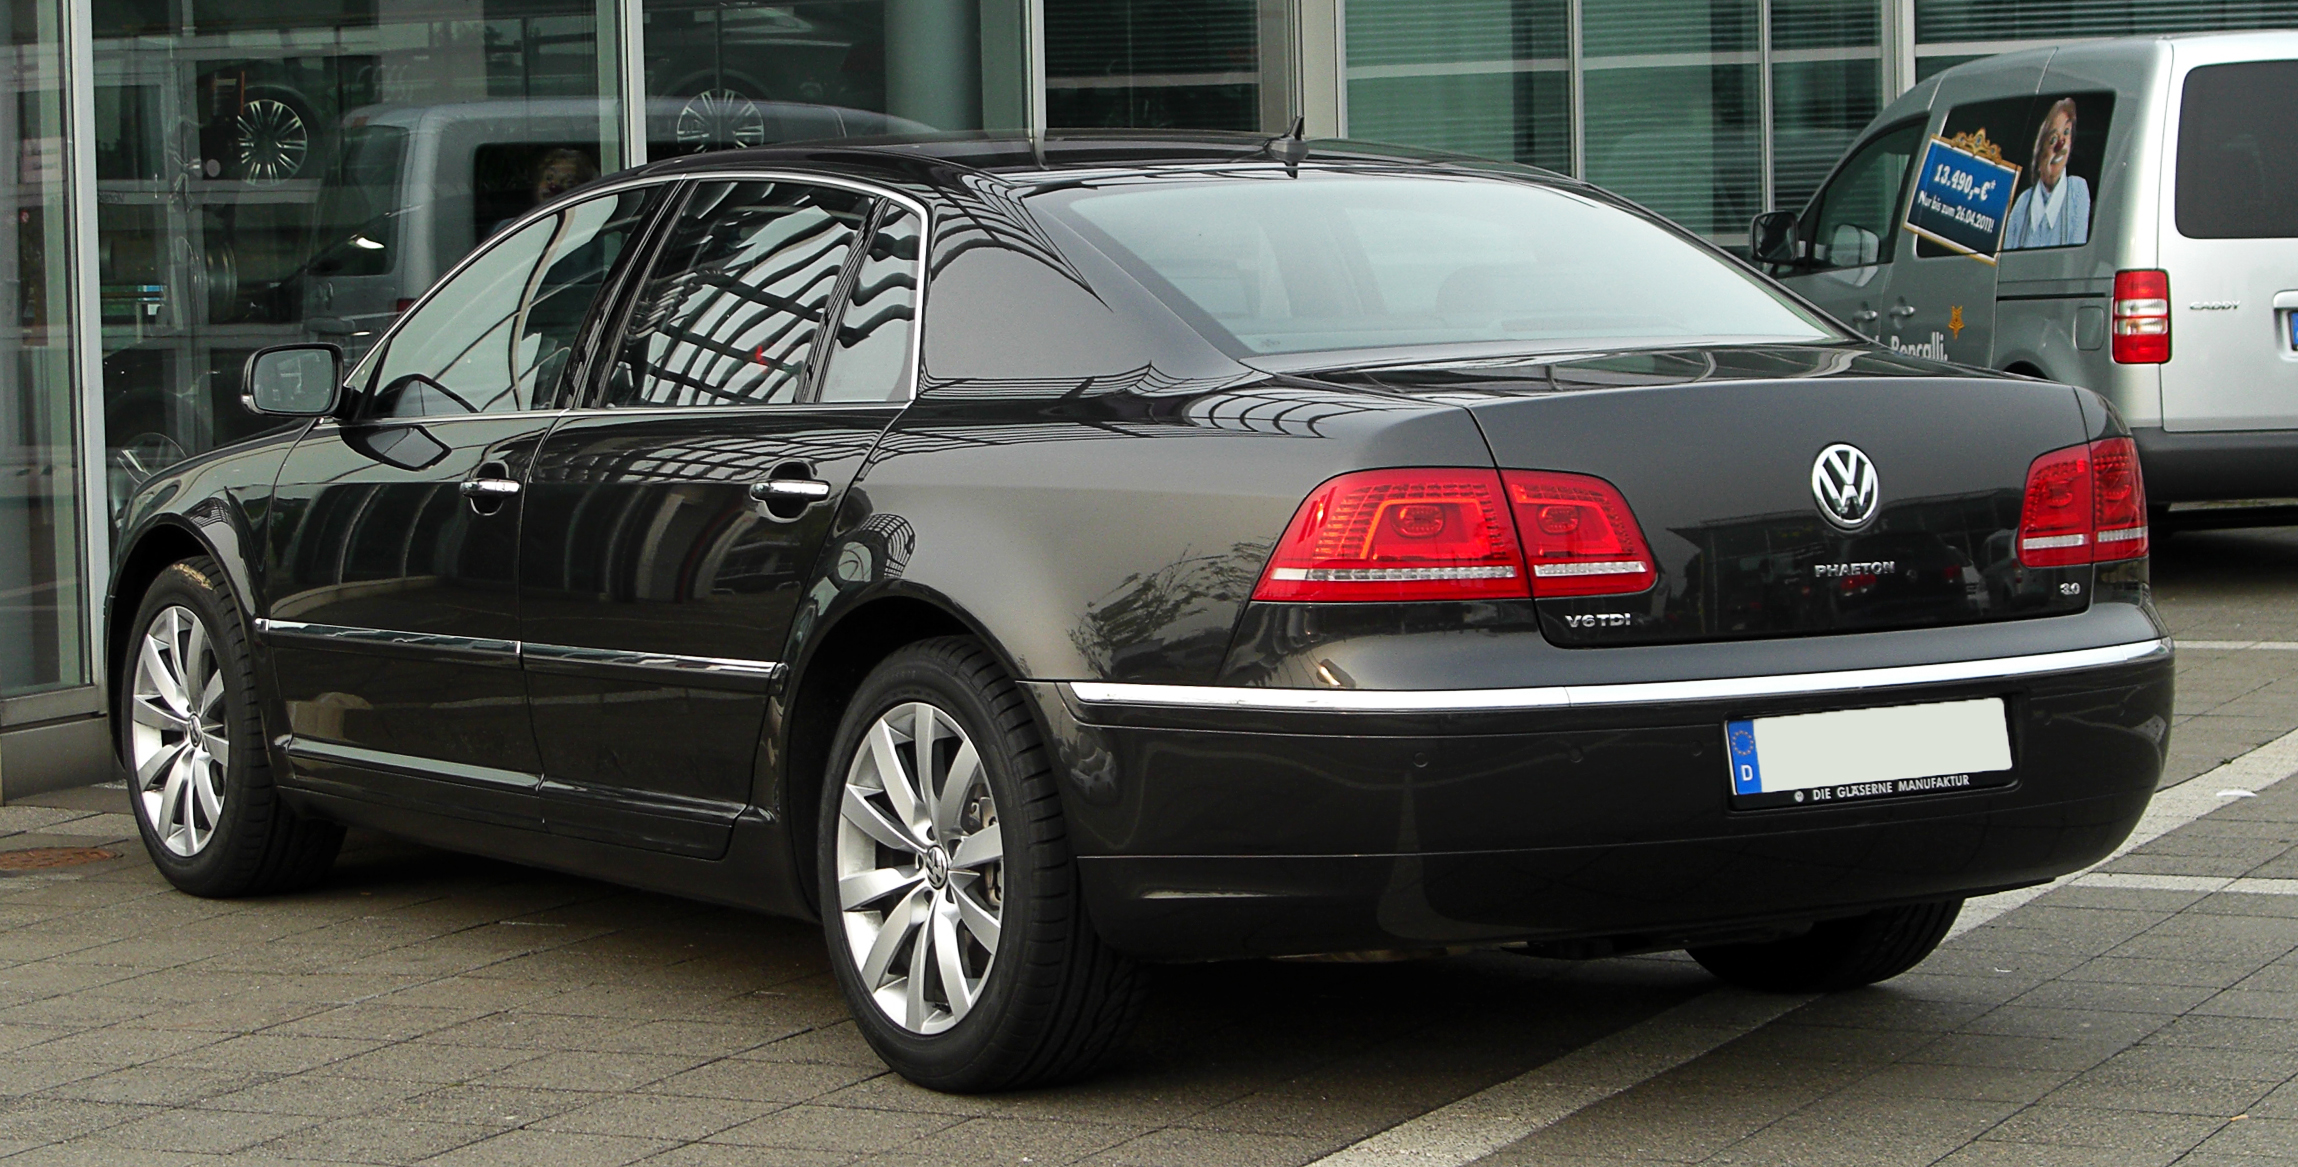 VW Phaeton V6 TDI 3.0 photo 02